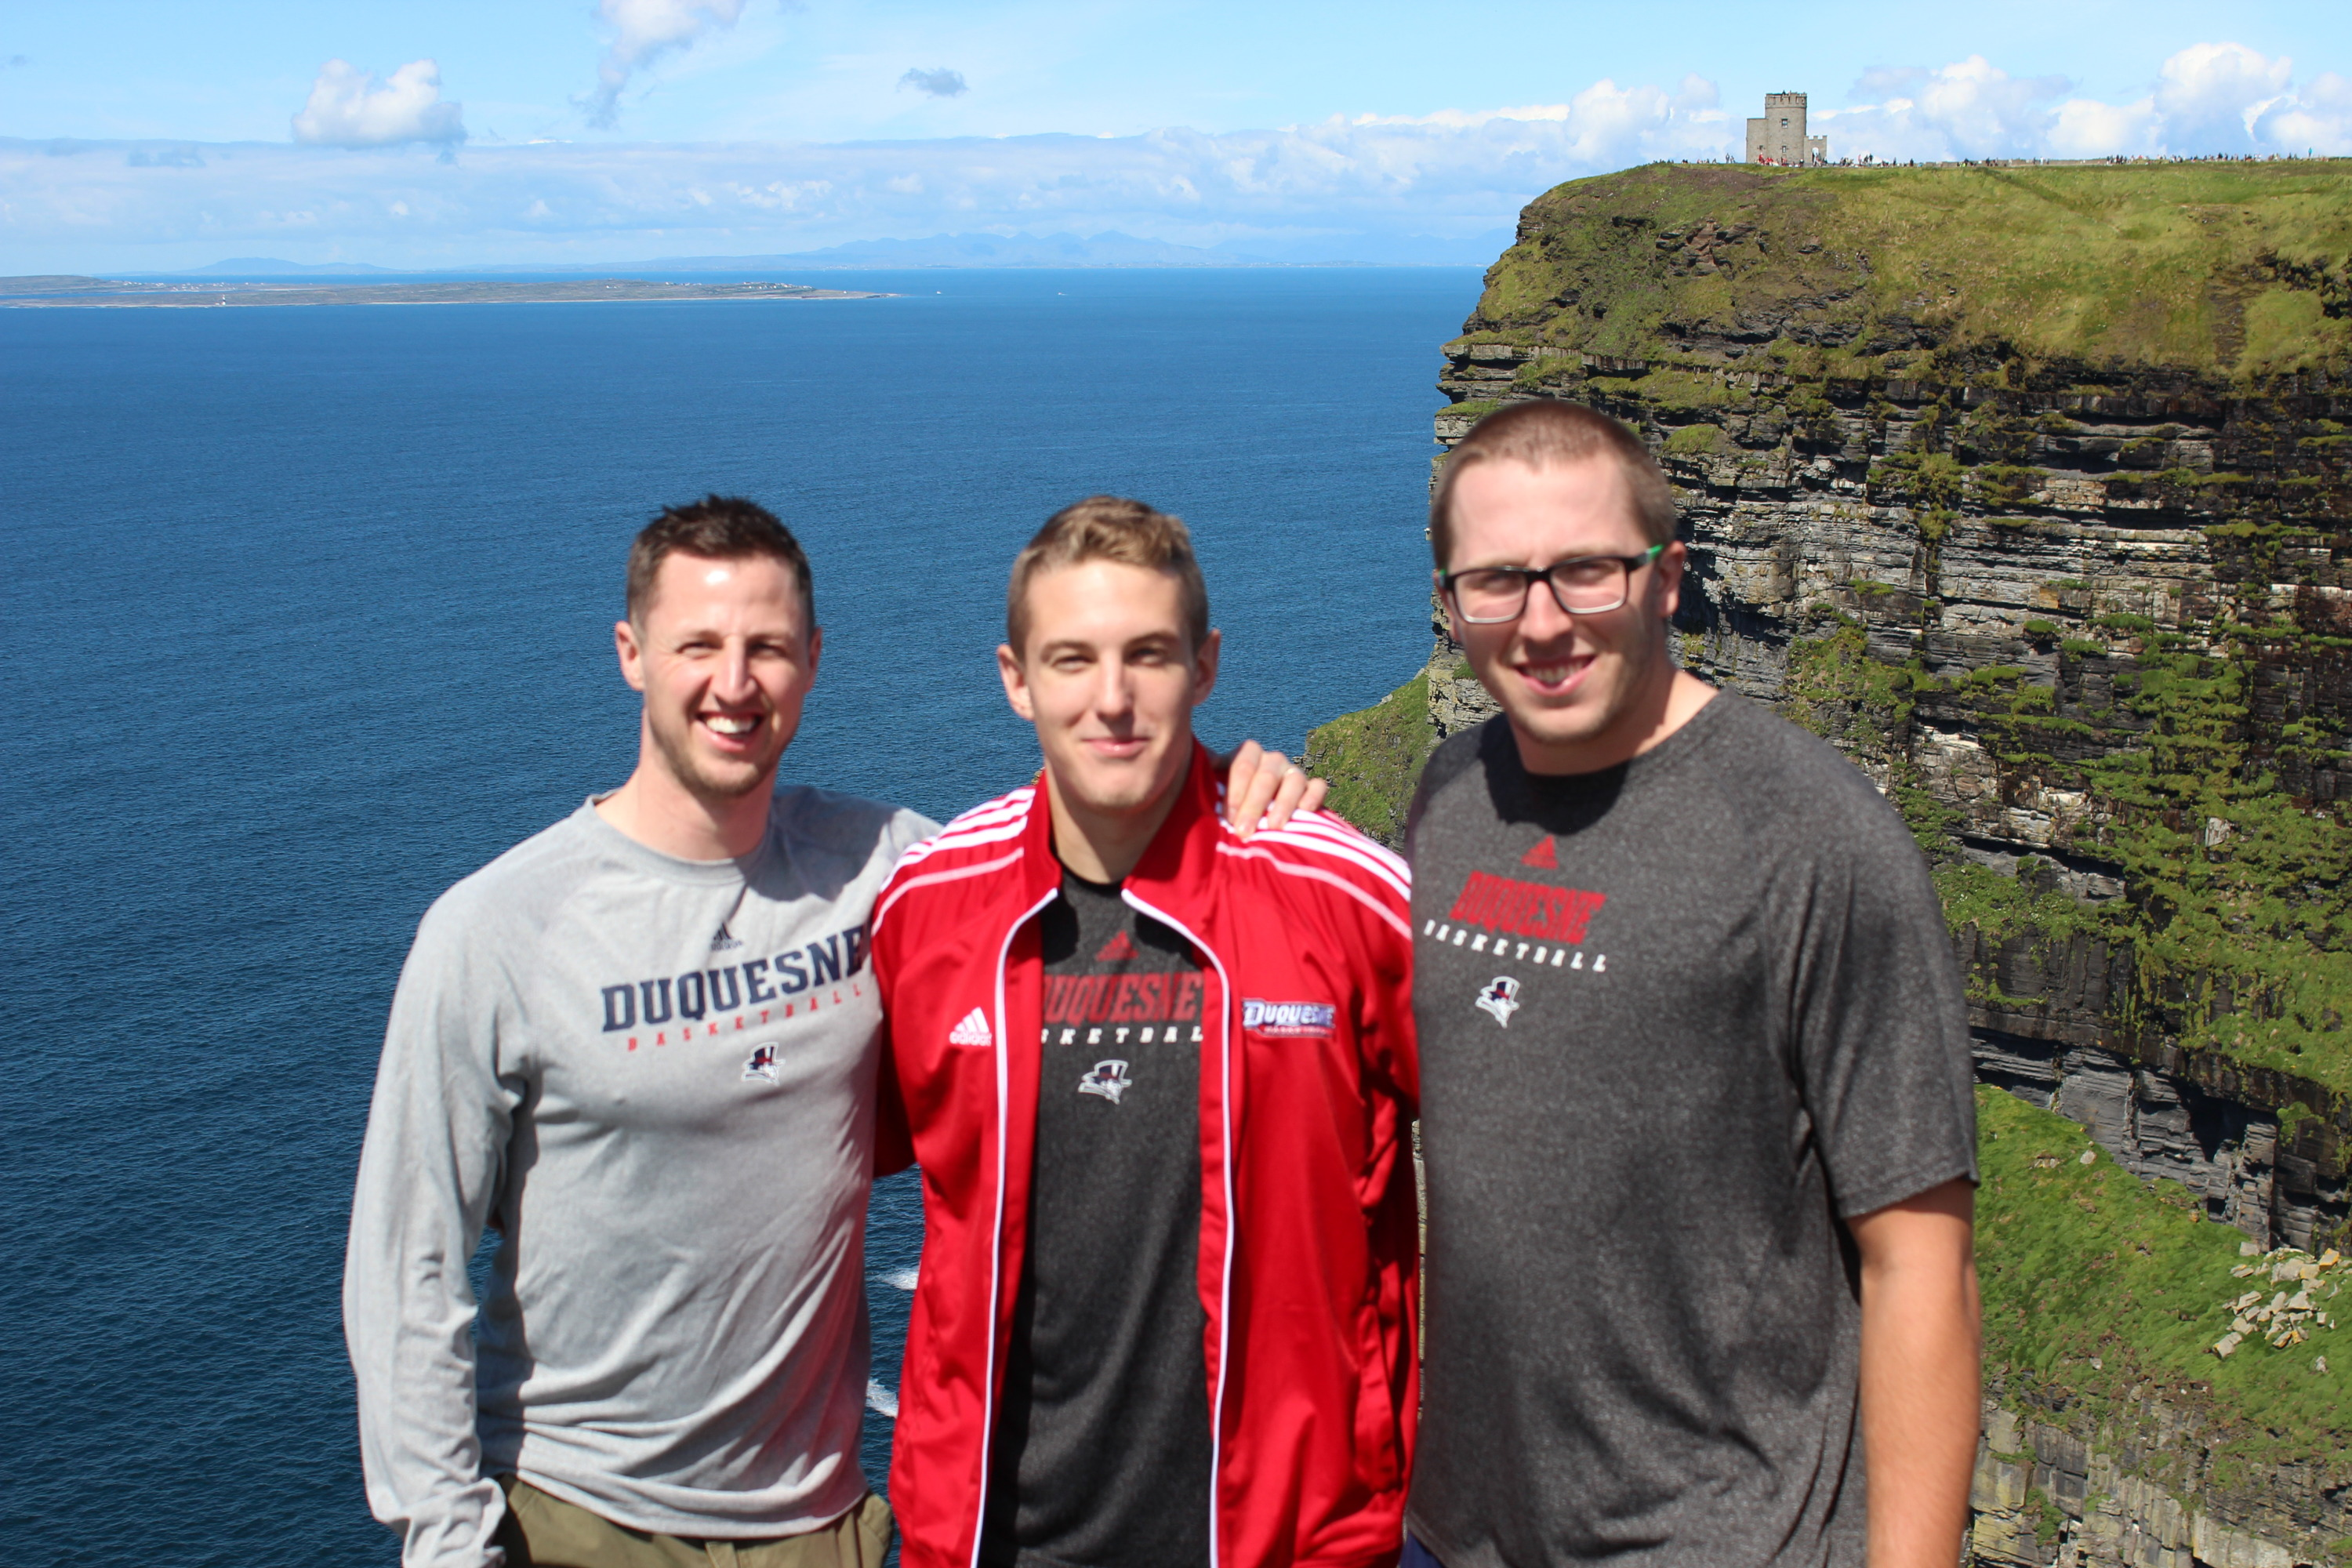 David Haus and Nick Foschia at the Cliffs of Moher.